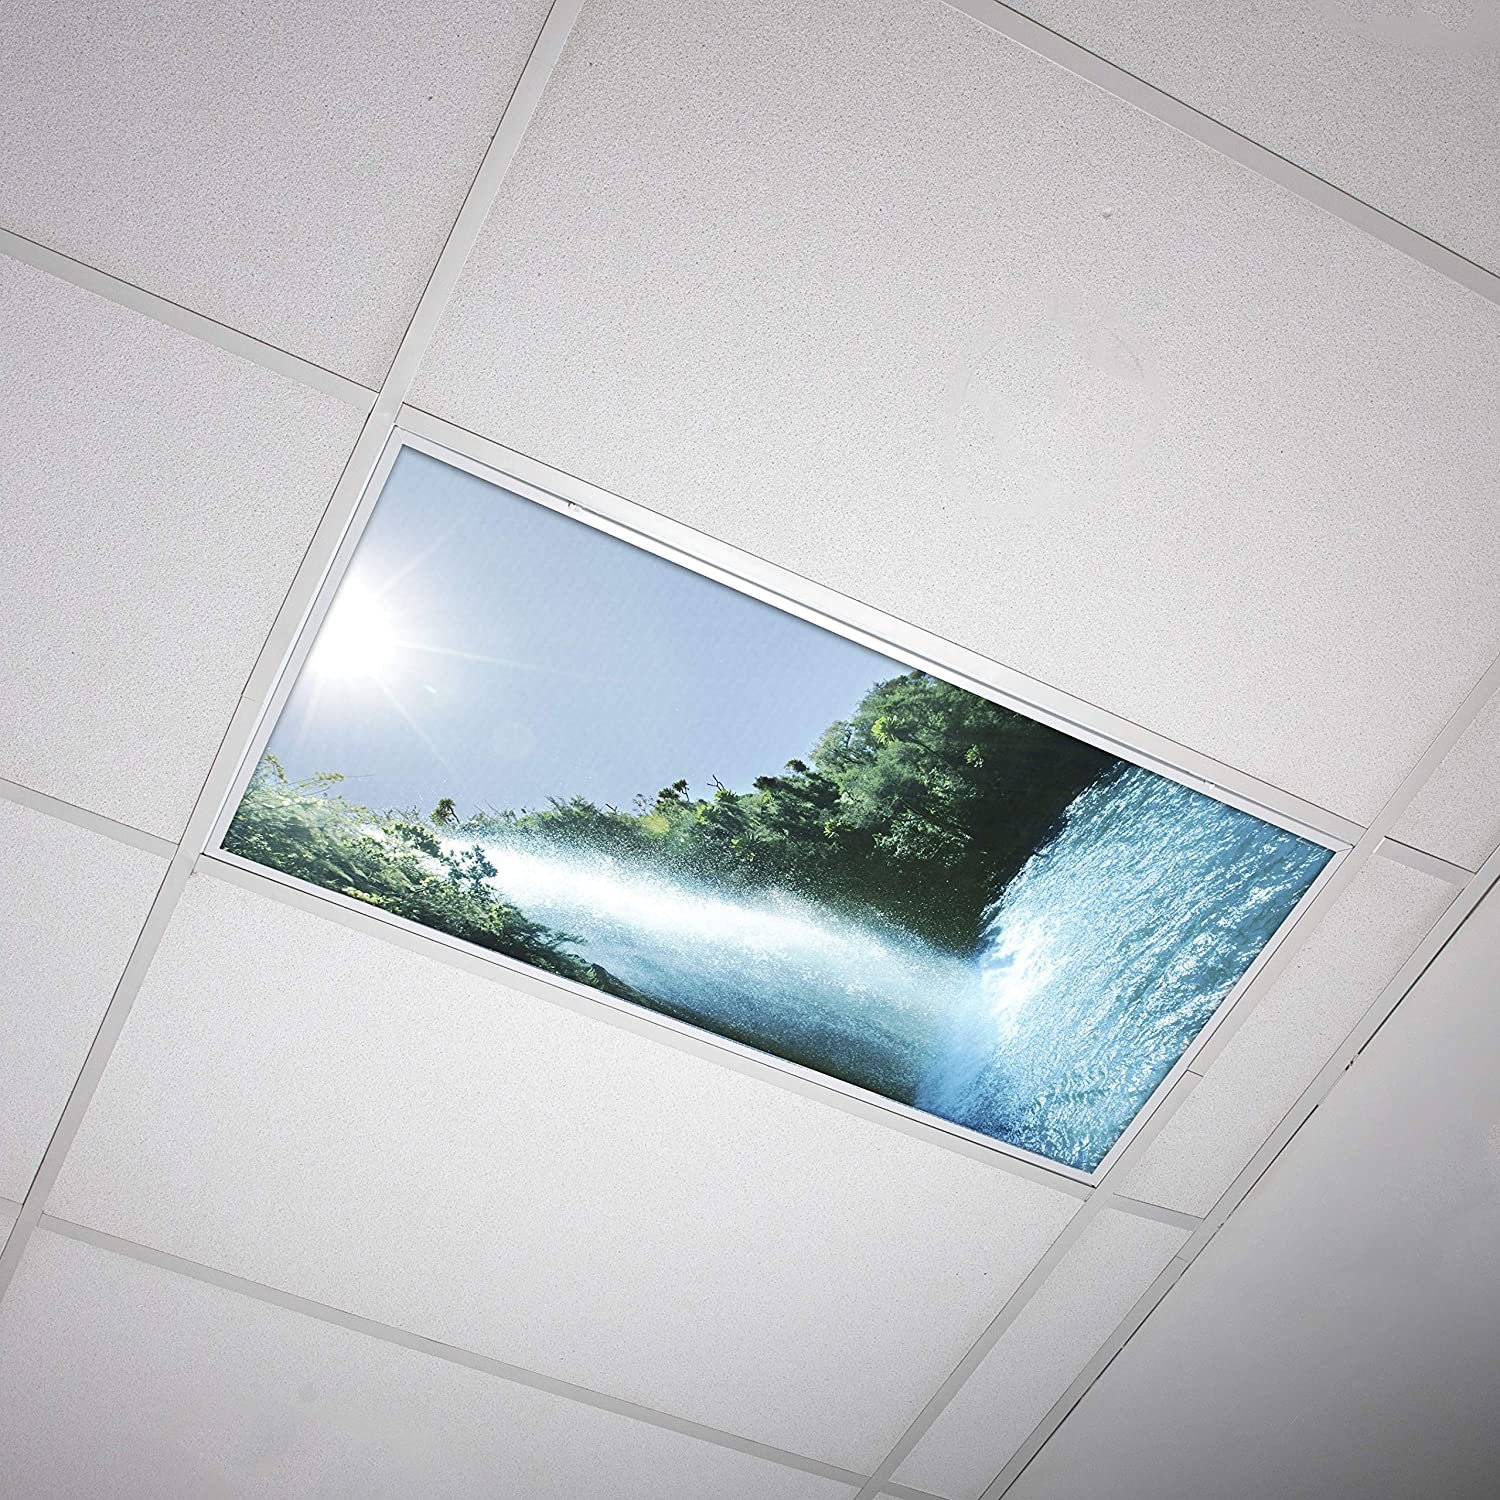 Octo Lights - Fluorescent Light Covers - 2x4 Flexible Decorative Light Diffuser Panels - Waterfall - for Classrooms and Offices - Waterfall 008